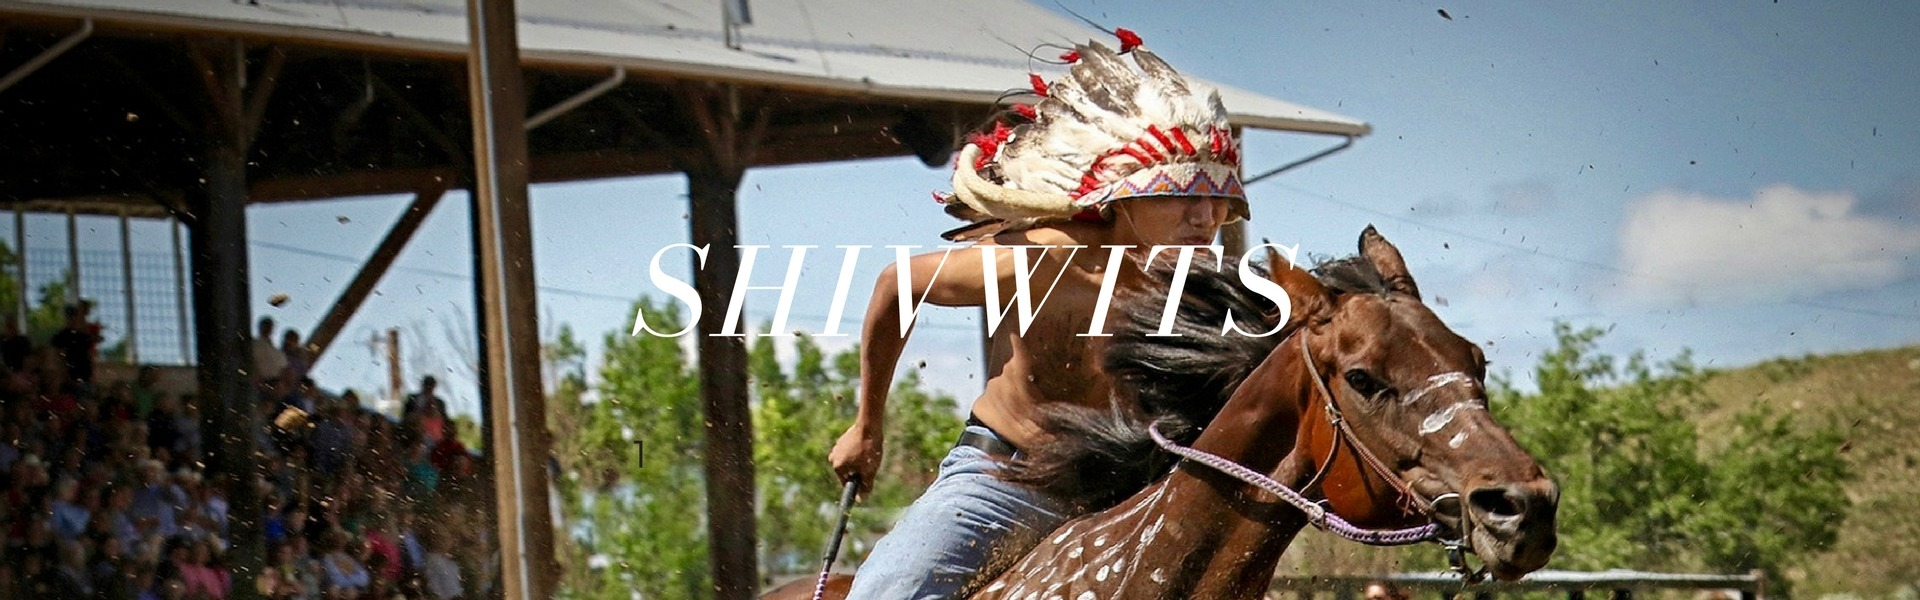 shivwit horse rider